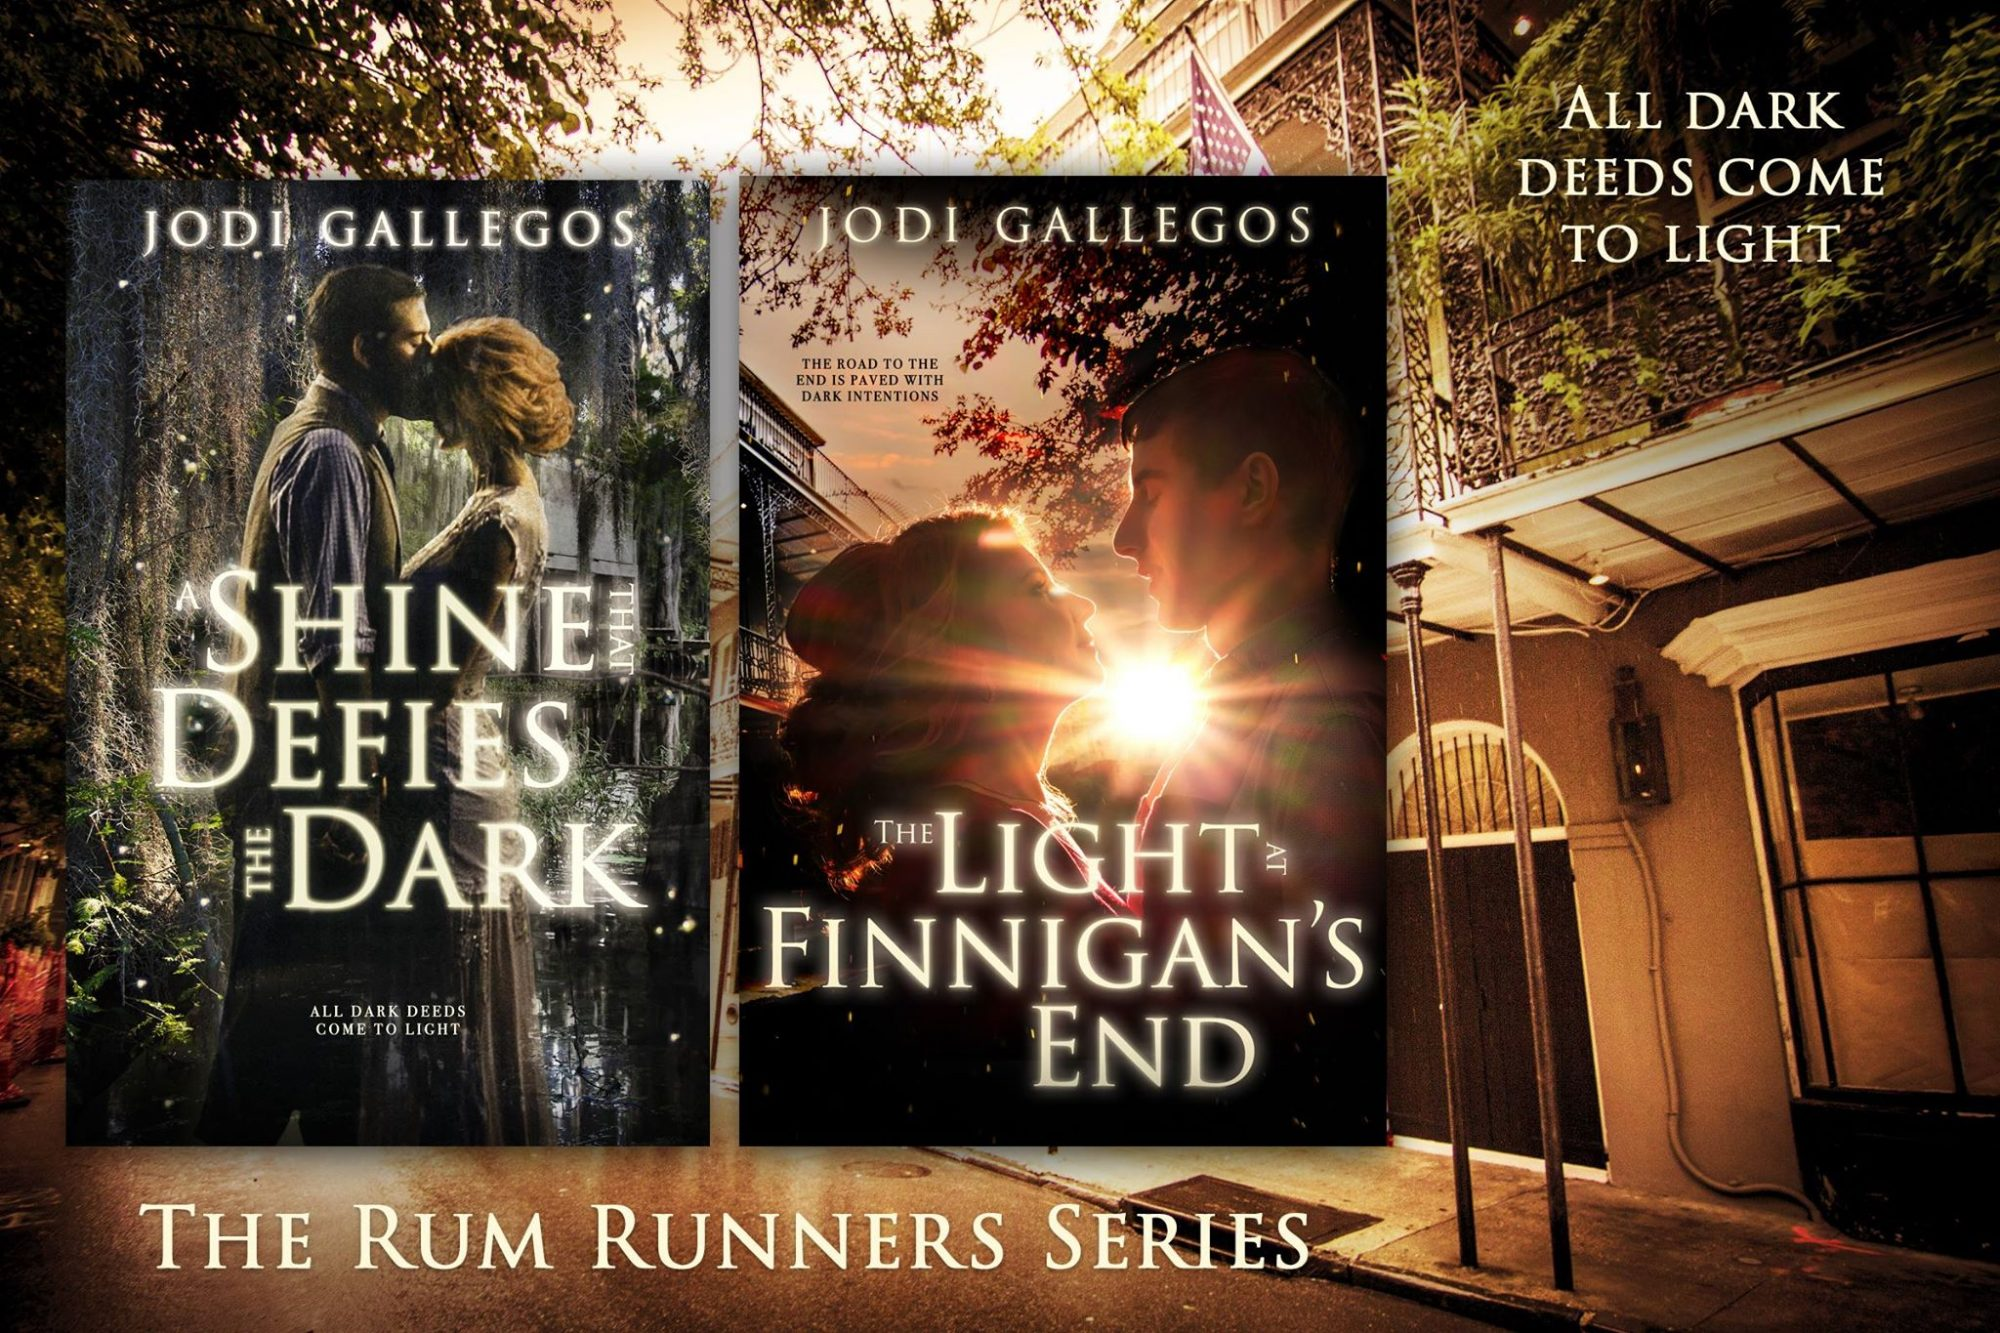 Jodi Gallegos- Author